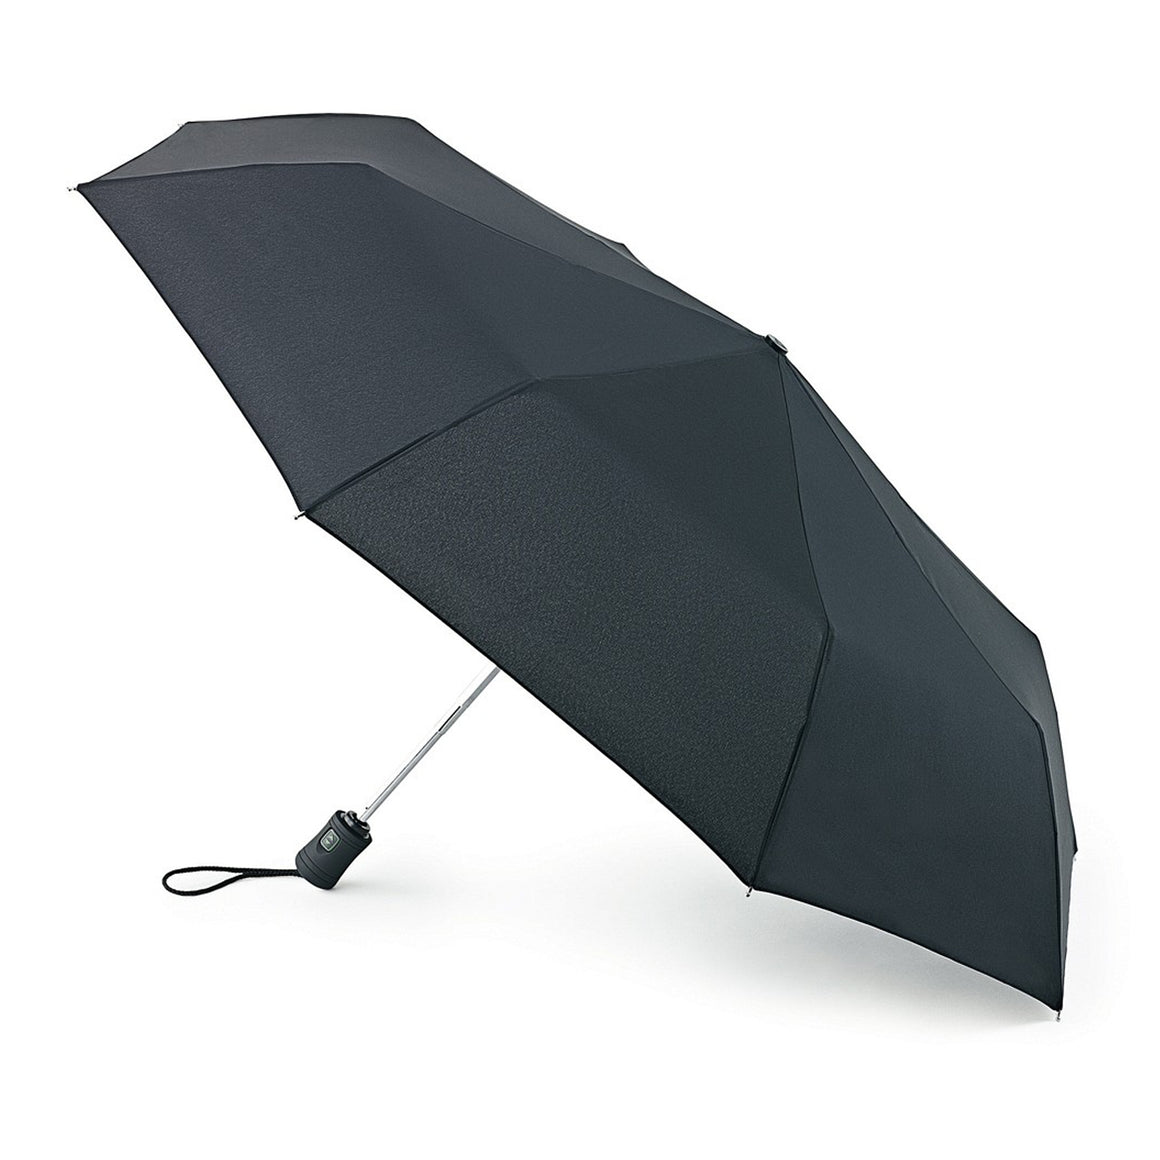 Fulton O & C-3 Umbrella in Black